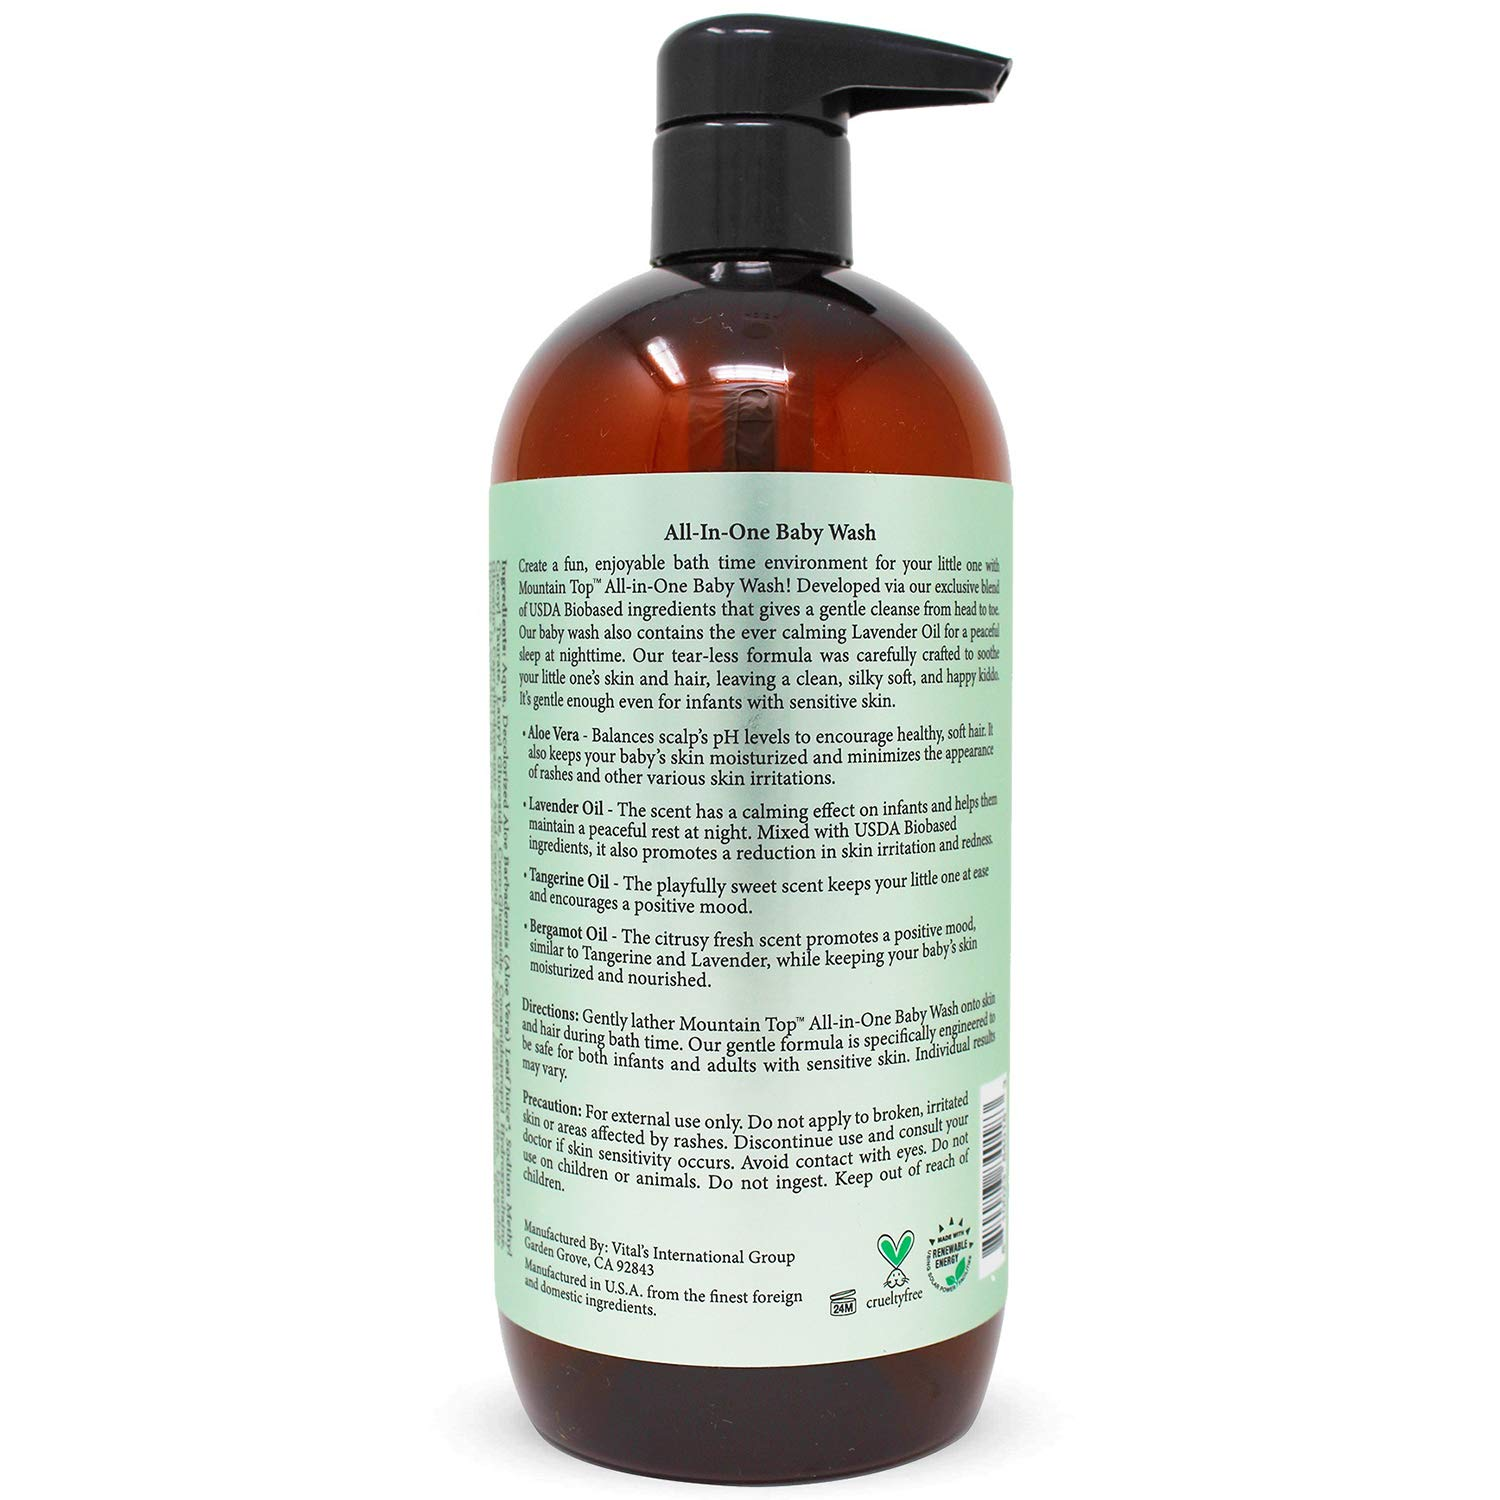 MOUNTAIN TOP All-in-One Premium Baby Wash - With USDA Biobased Ingredients, Sulfate-Free, Tear-Free, Hypoallergenic Natural 2-in-1 Baby Shampoo & Body Wash